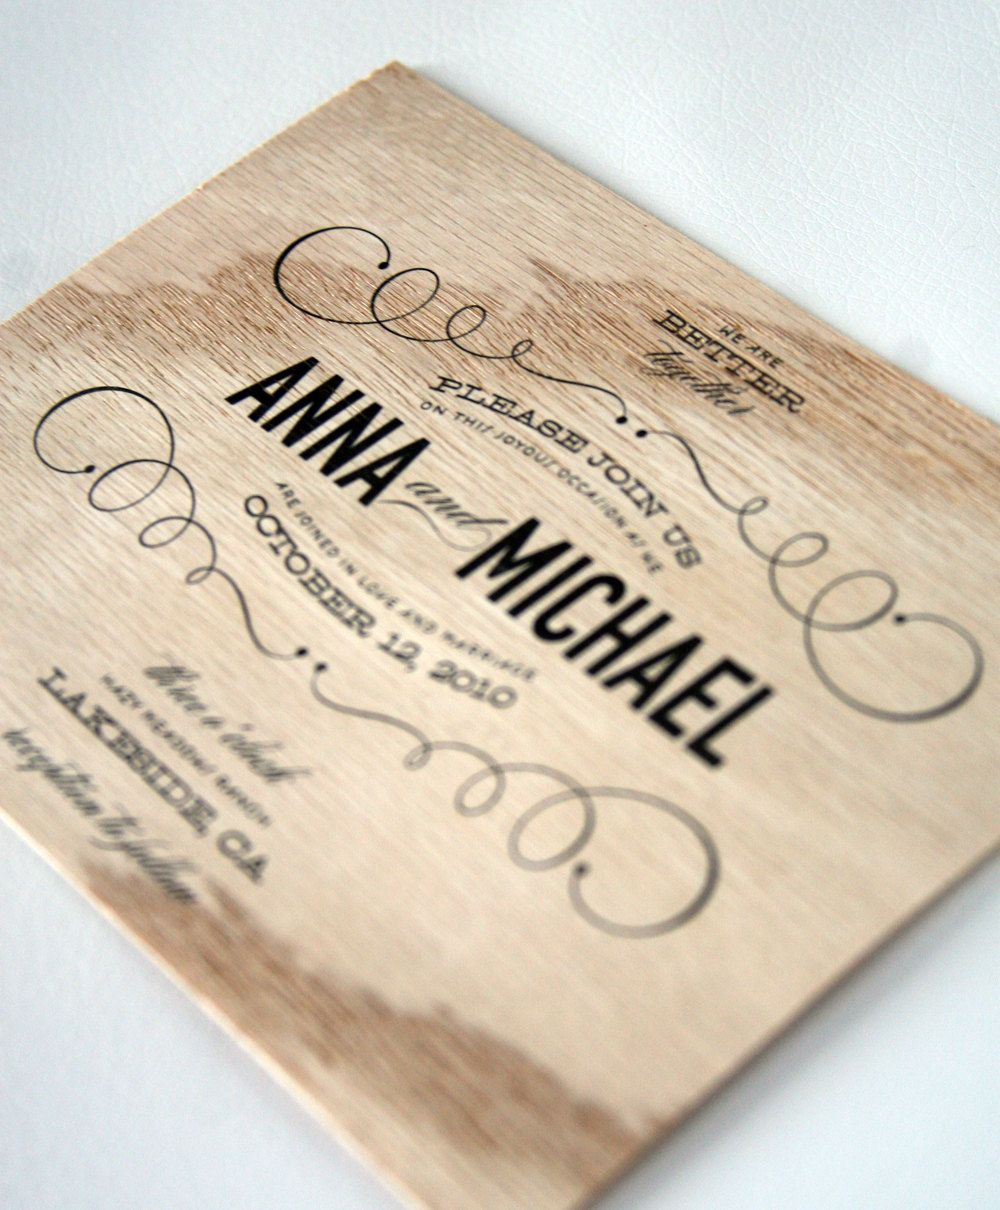 wooden invites and menusapparently it takes fewer trees than paper so - Wood Wedding Invitations